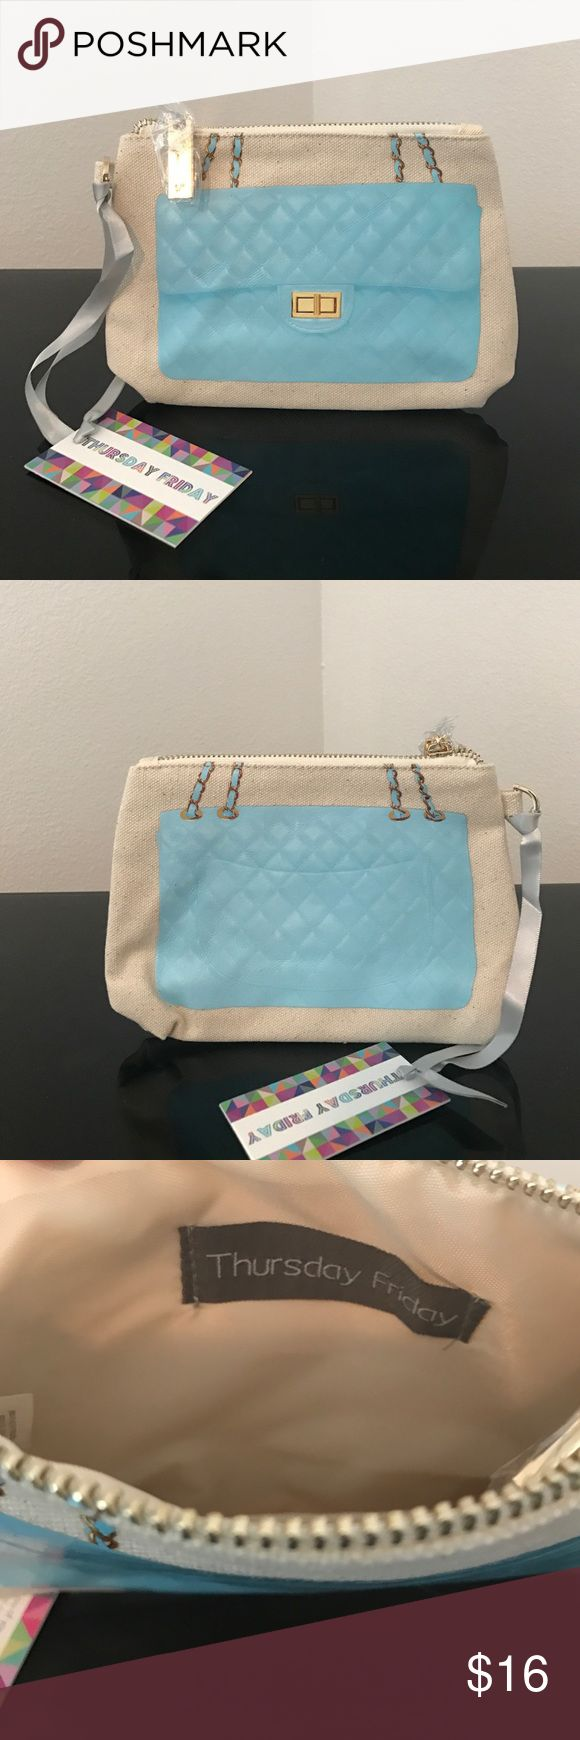 NWT Thursday Friday Clutch New with tags Thursday Friday canvas clutch with light blue Chanel inspired design. Thursday Friday Bags Clutches & Wristlets